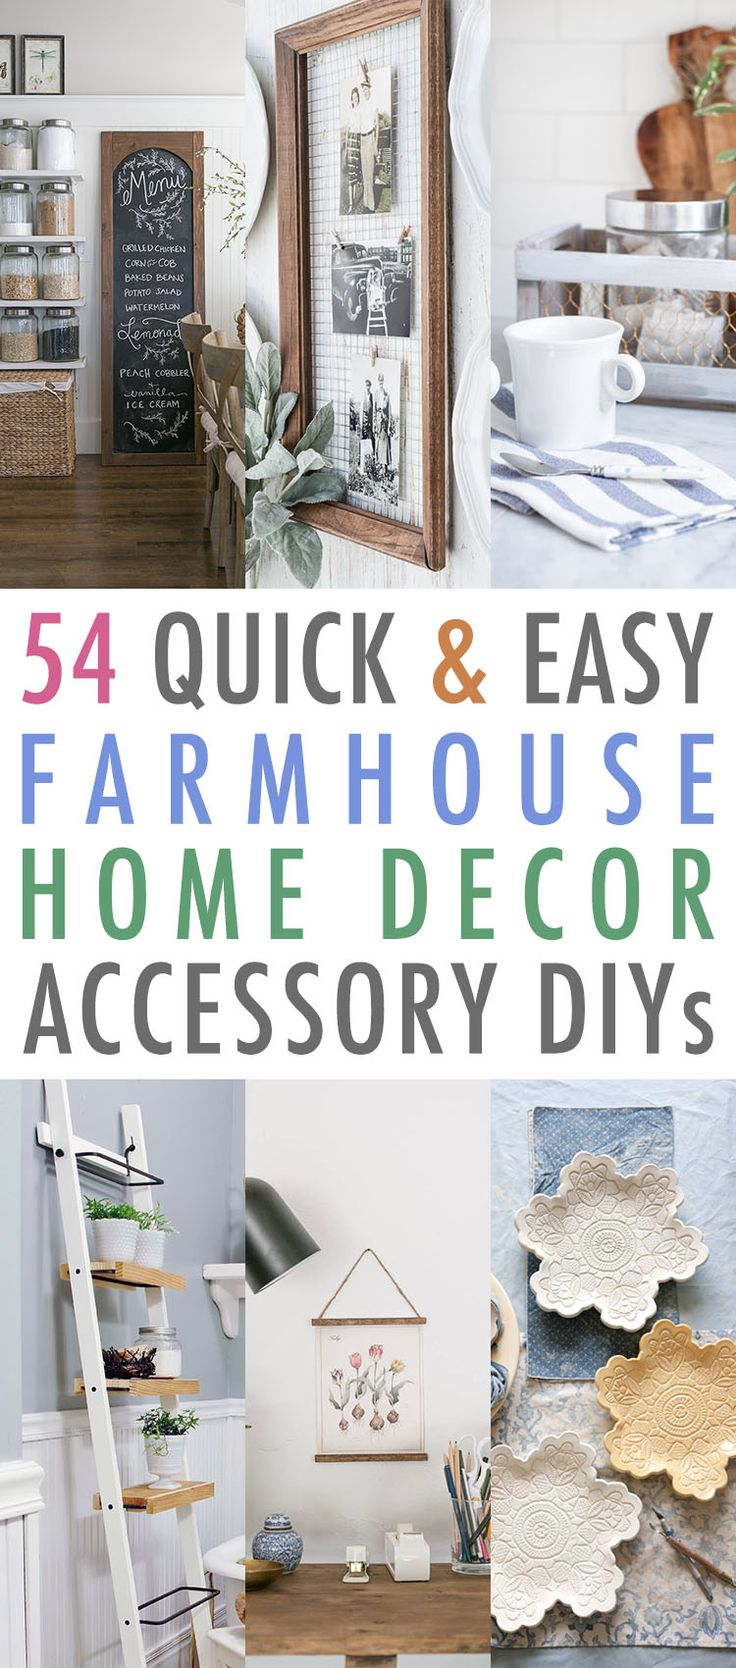 528 best Farmhouse Ideas & Decor images on Pinterest | Decorating ...